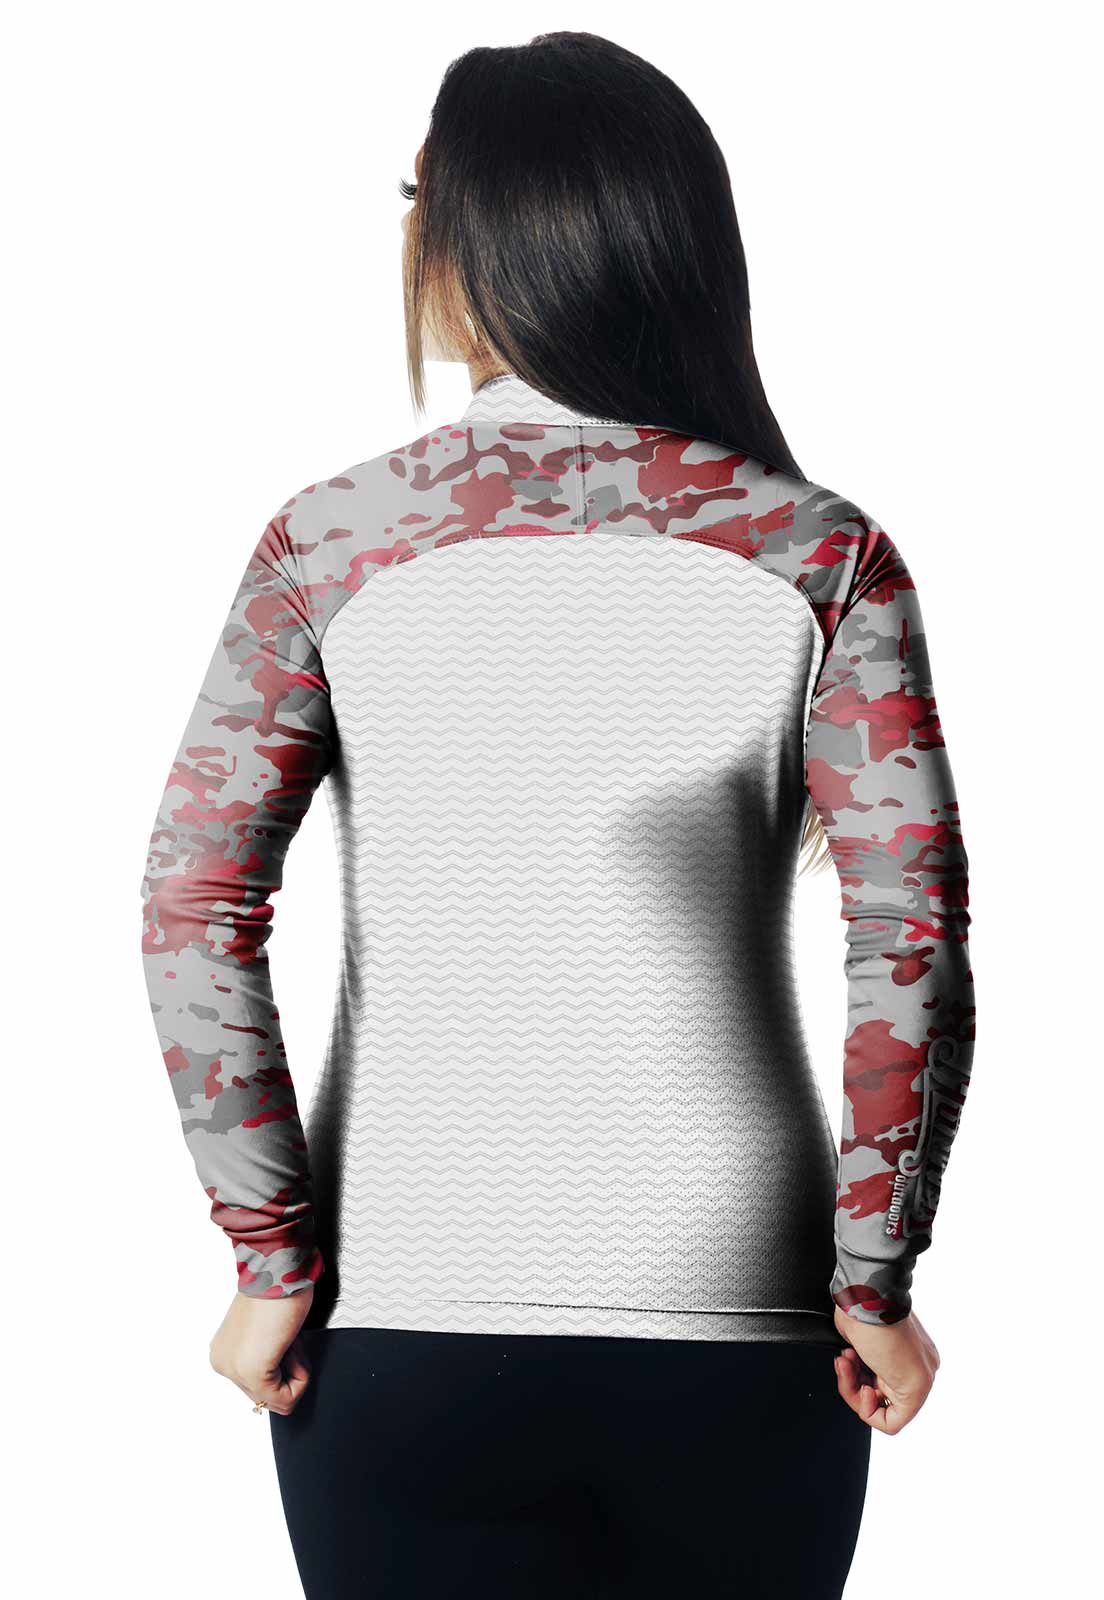 CAMISA DE PESCA FISH CAMUFLADA PRO 16 FEMININA + BANDANA GRÁTIS - REAL HUNTER OUTDOORS